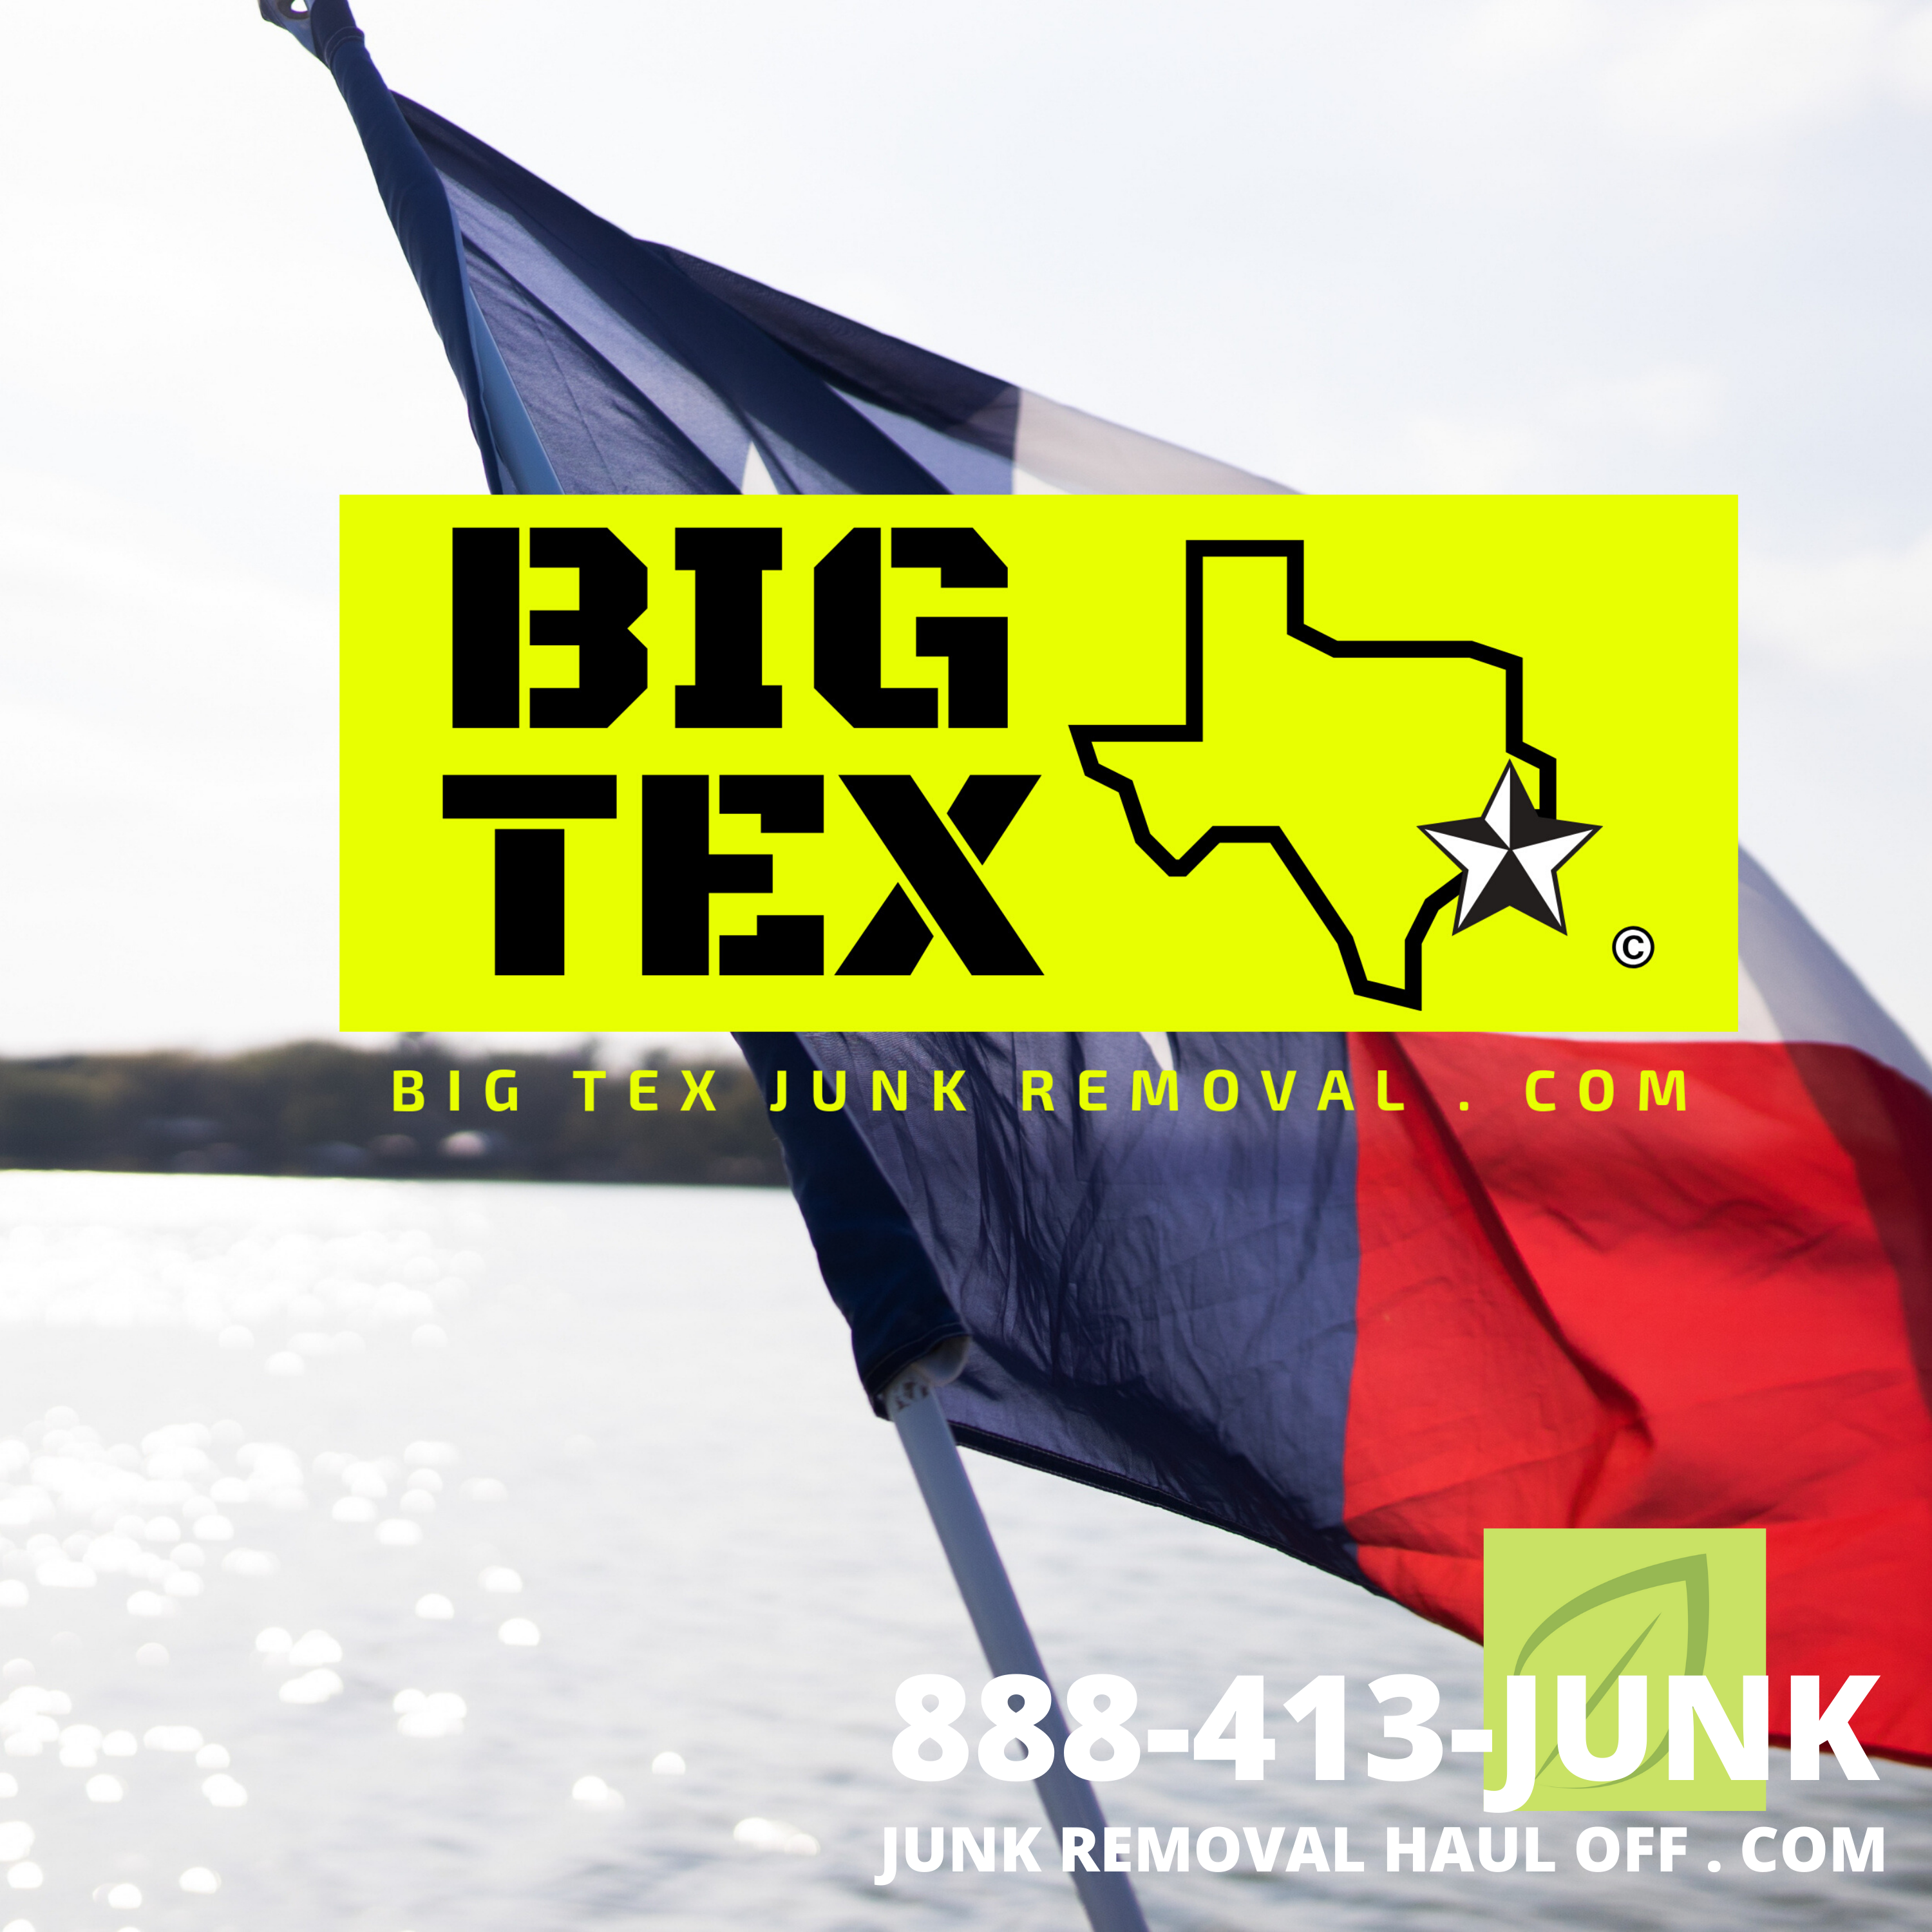 BIG TEX Junk Removal is Making Homes and Offices Shine in Dallas, TX 12